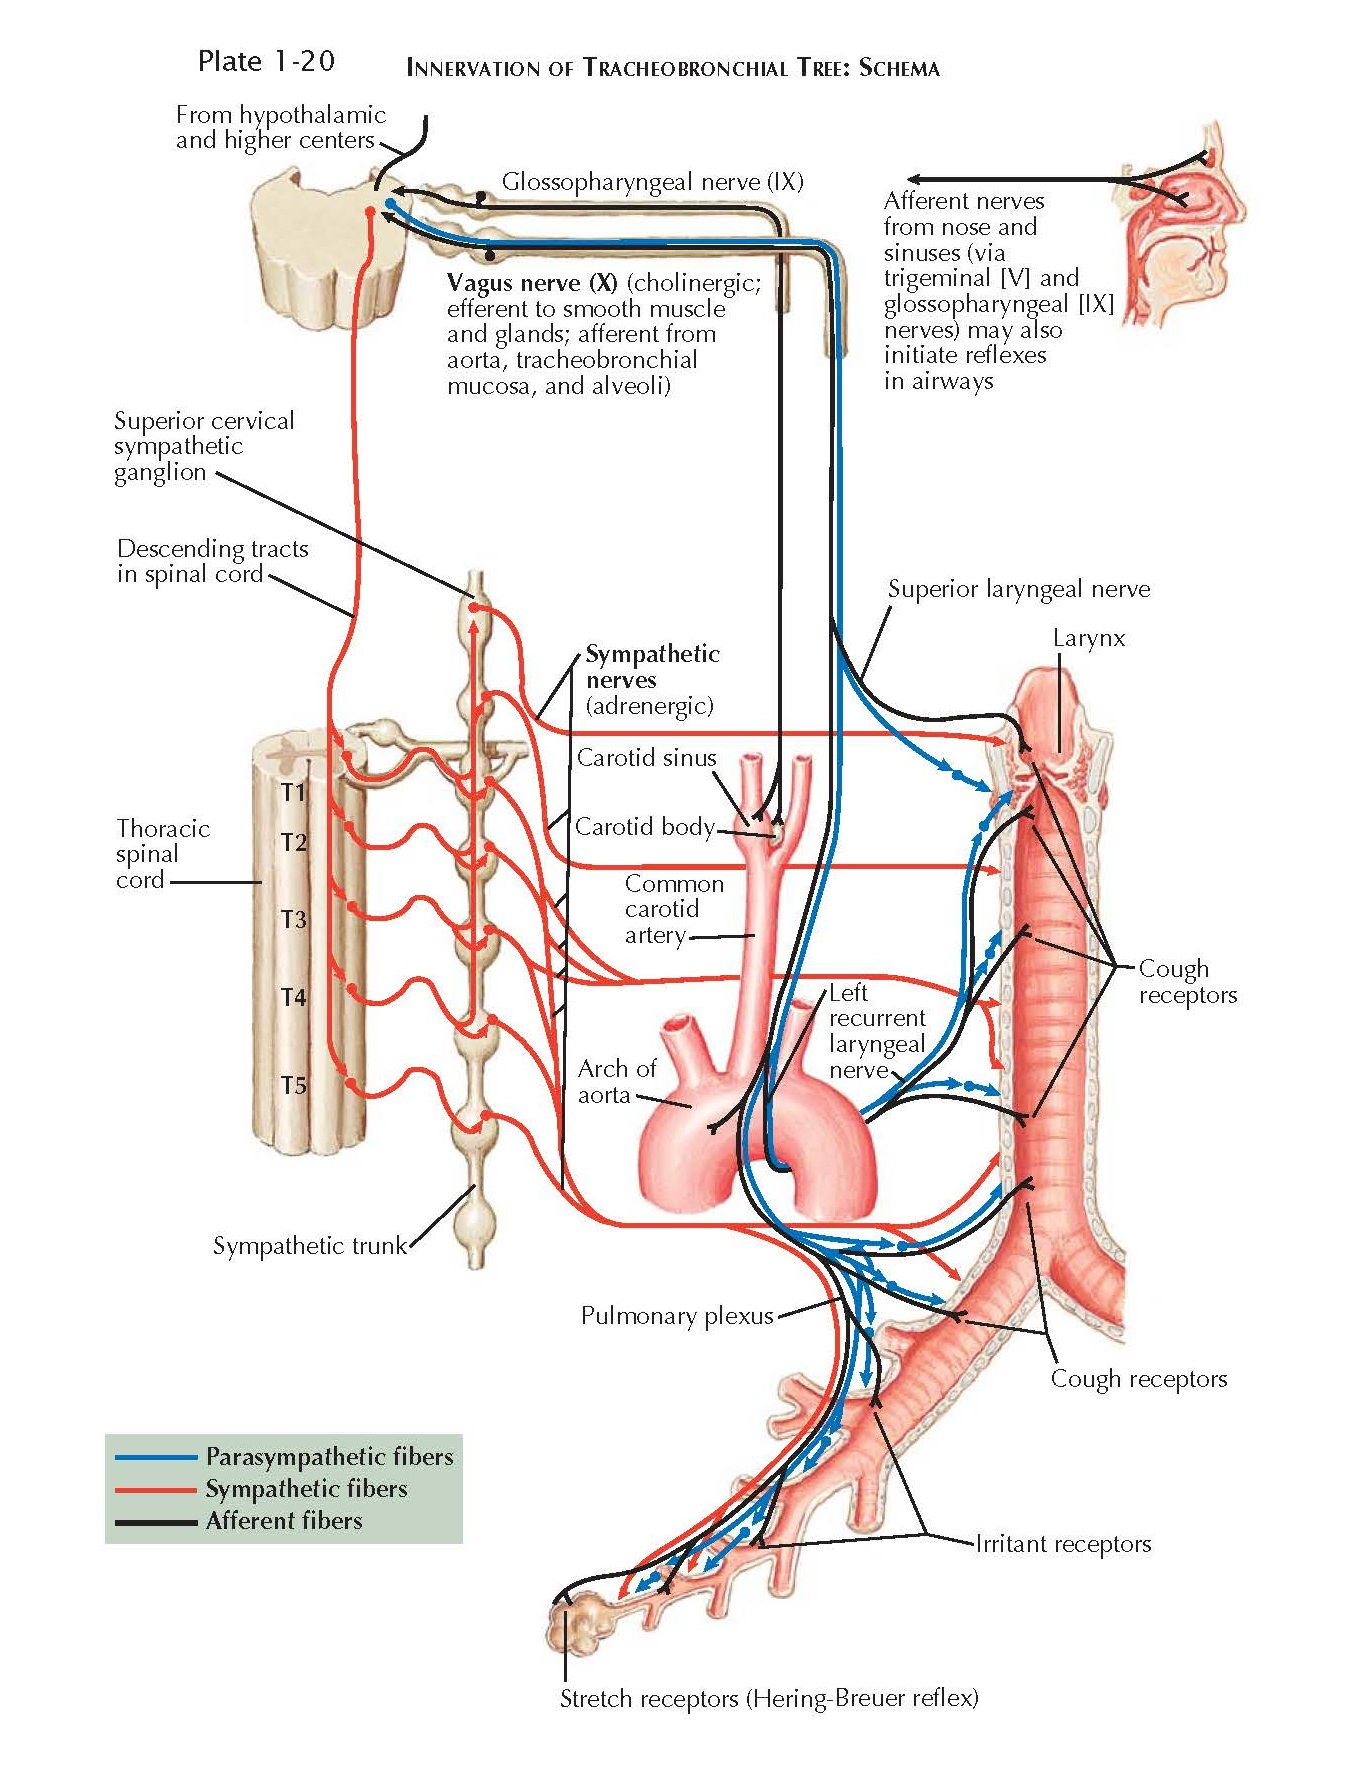 INNERVATION OF TRACHEOBRONCHIAL TREE: SCHEMA